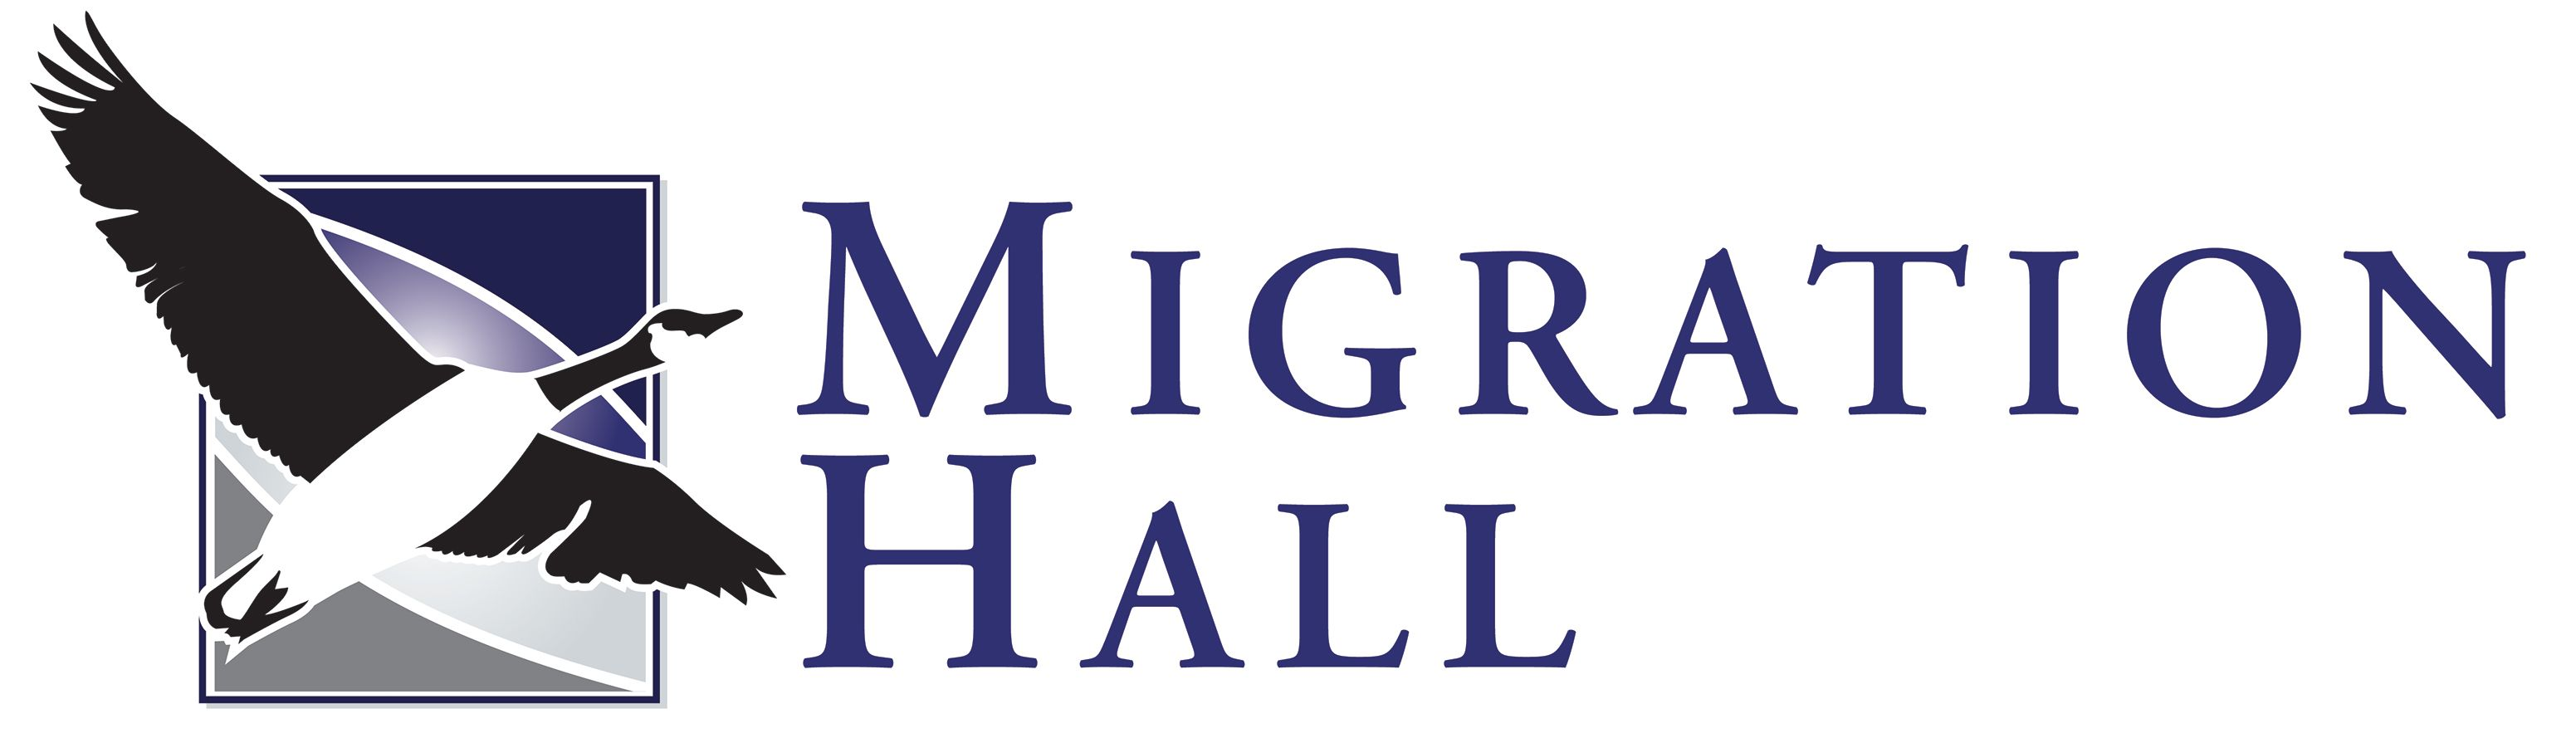 Migration Community Hall logo